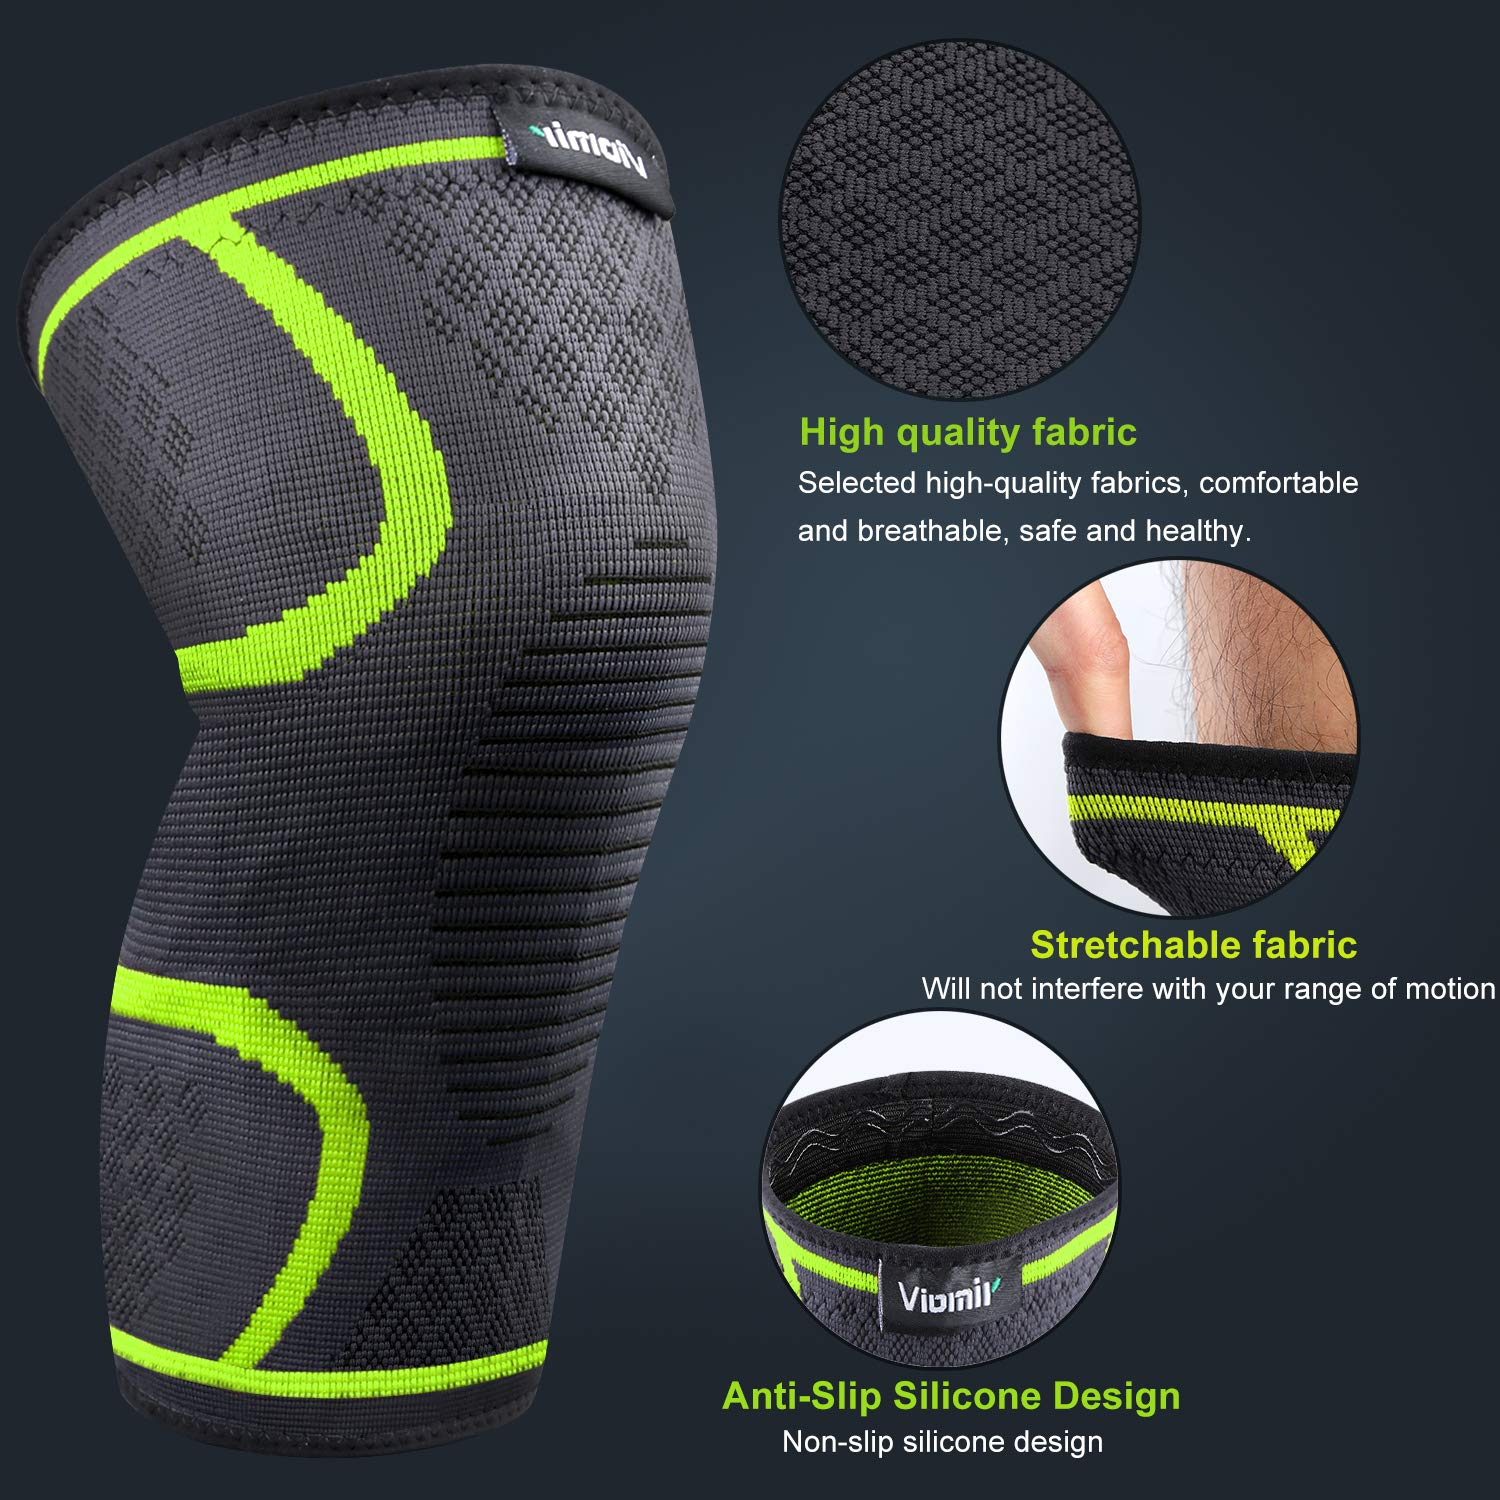 ACL Sports Knee Compression Sleeve for Running Meniscus Tear Arthritis Viomir 2 Pack Knee Brace Joint Pain Relief and Injury Recovery